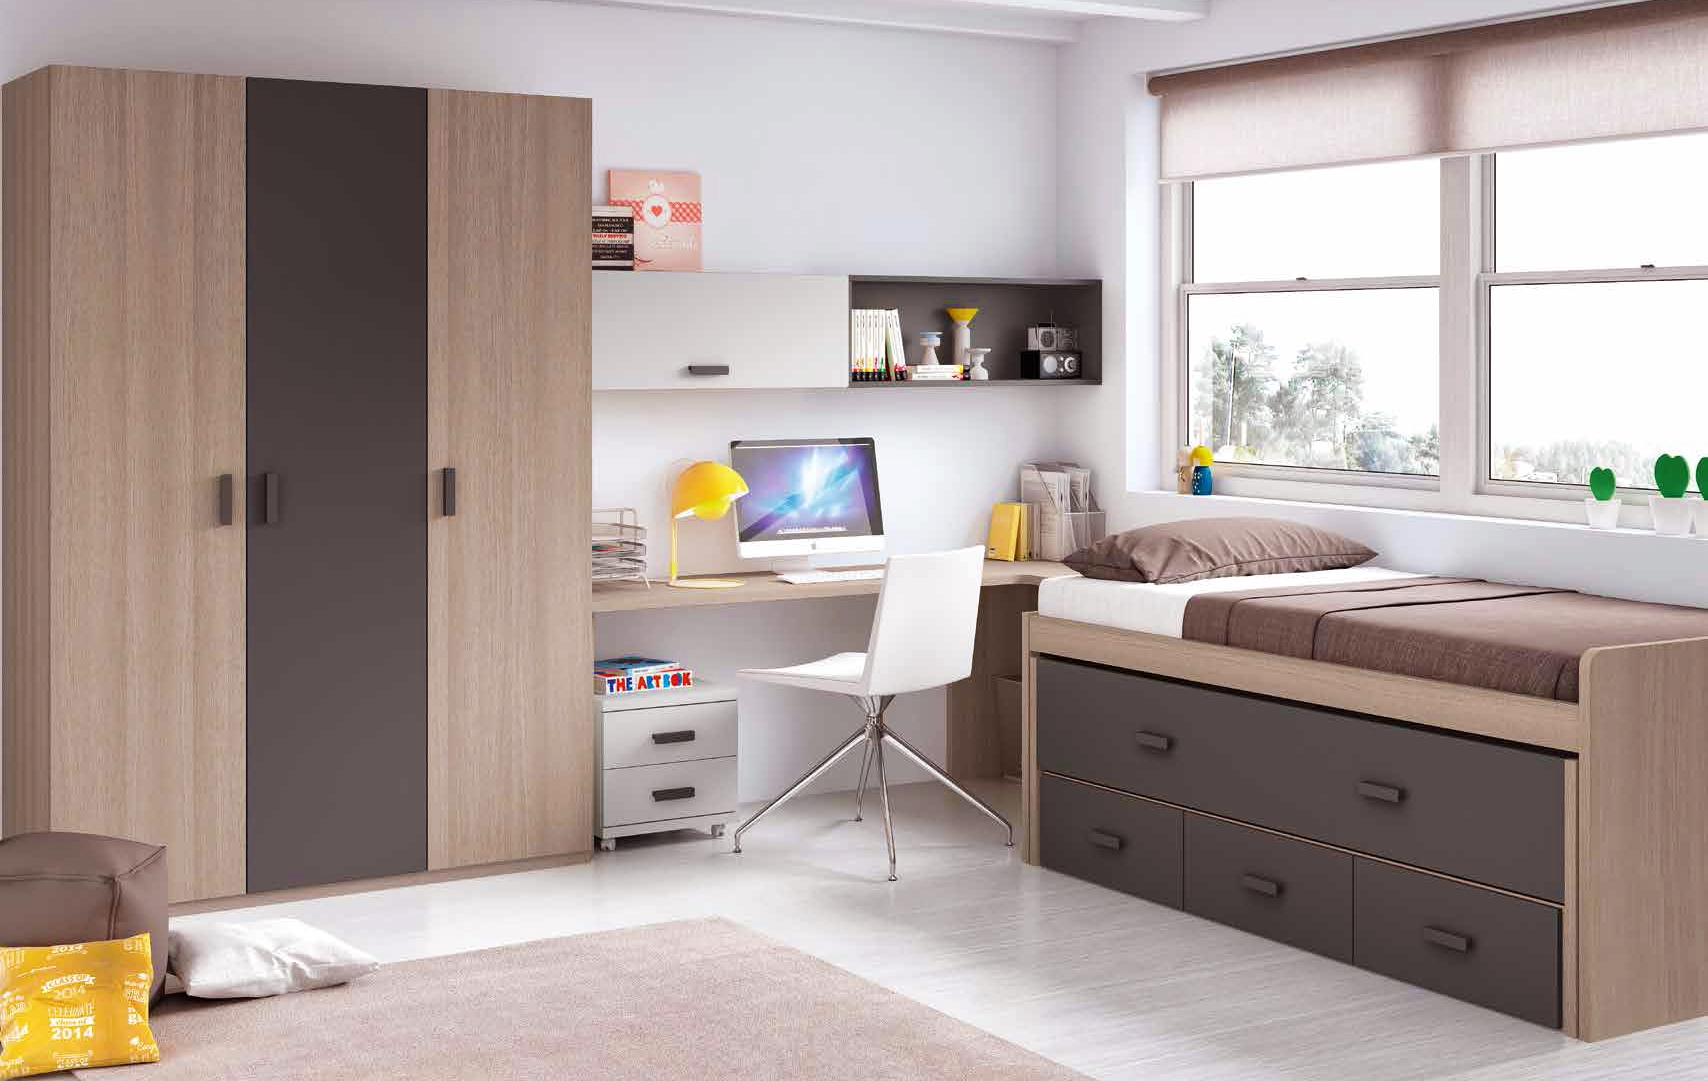 chambre originale garcon avec des id es int ressantes pour la conception de la. Black Bedroom Furniture Sets. Home Design Ideas